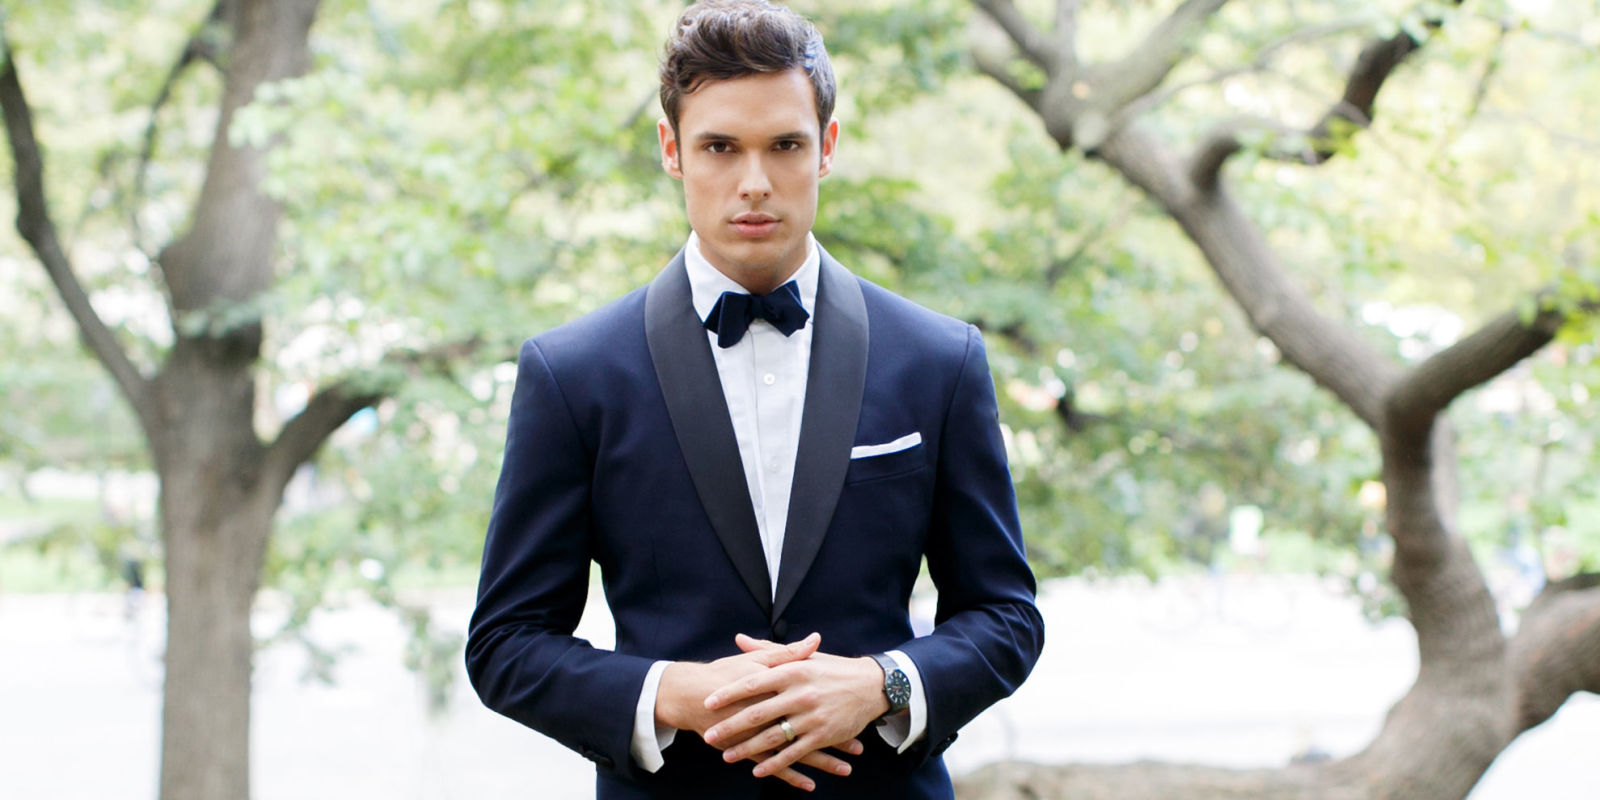 5 Essential Style Tips For Grooms